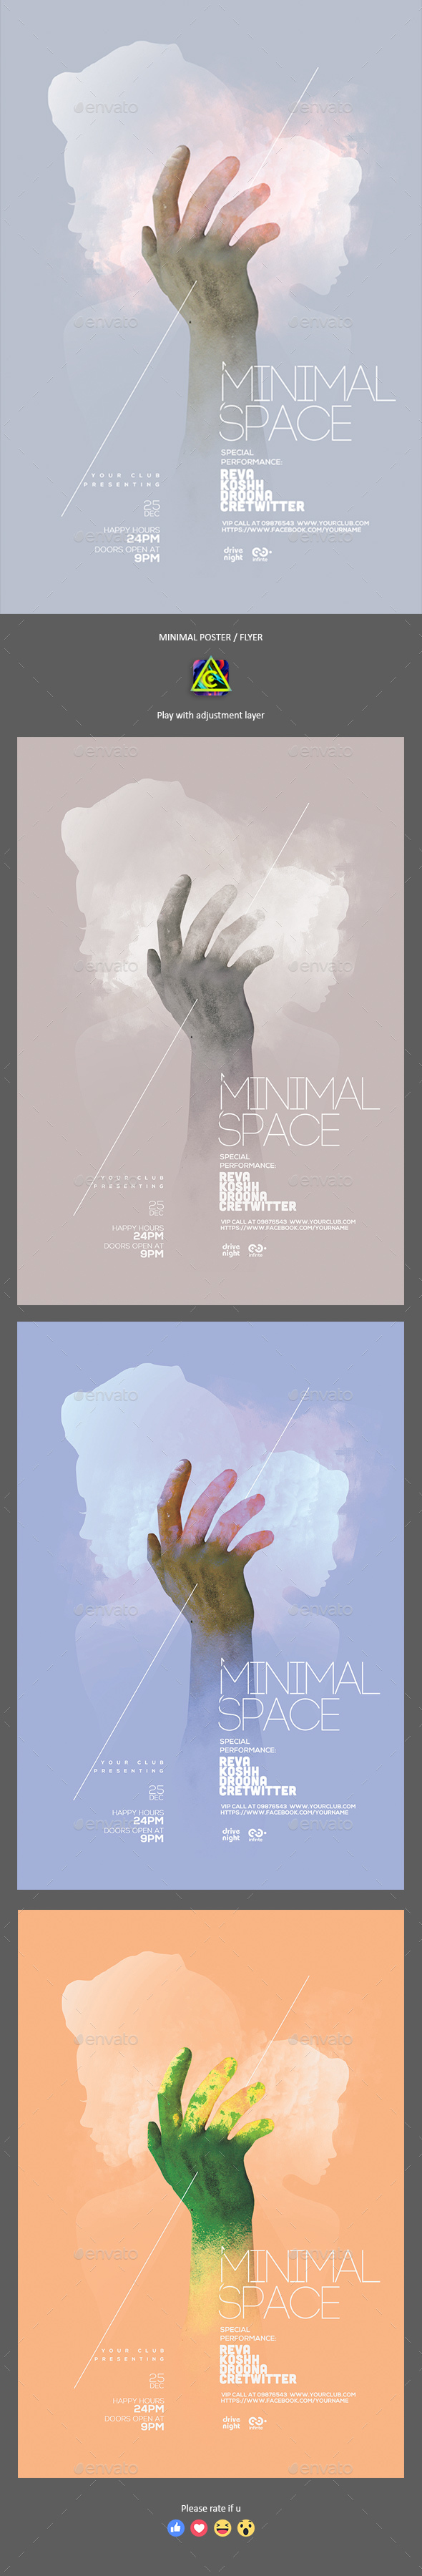 Minimal Club Poster / Flyer - Clubs & Parties Events